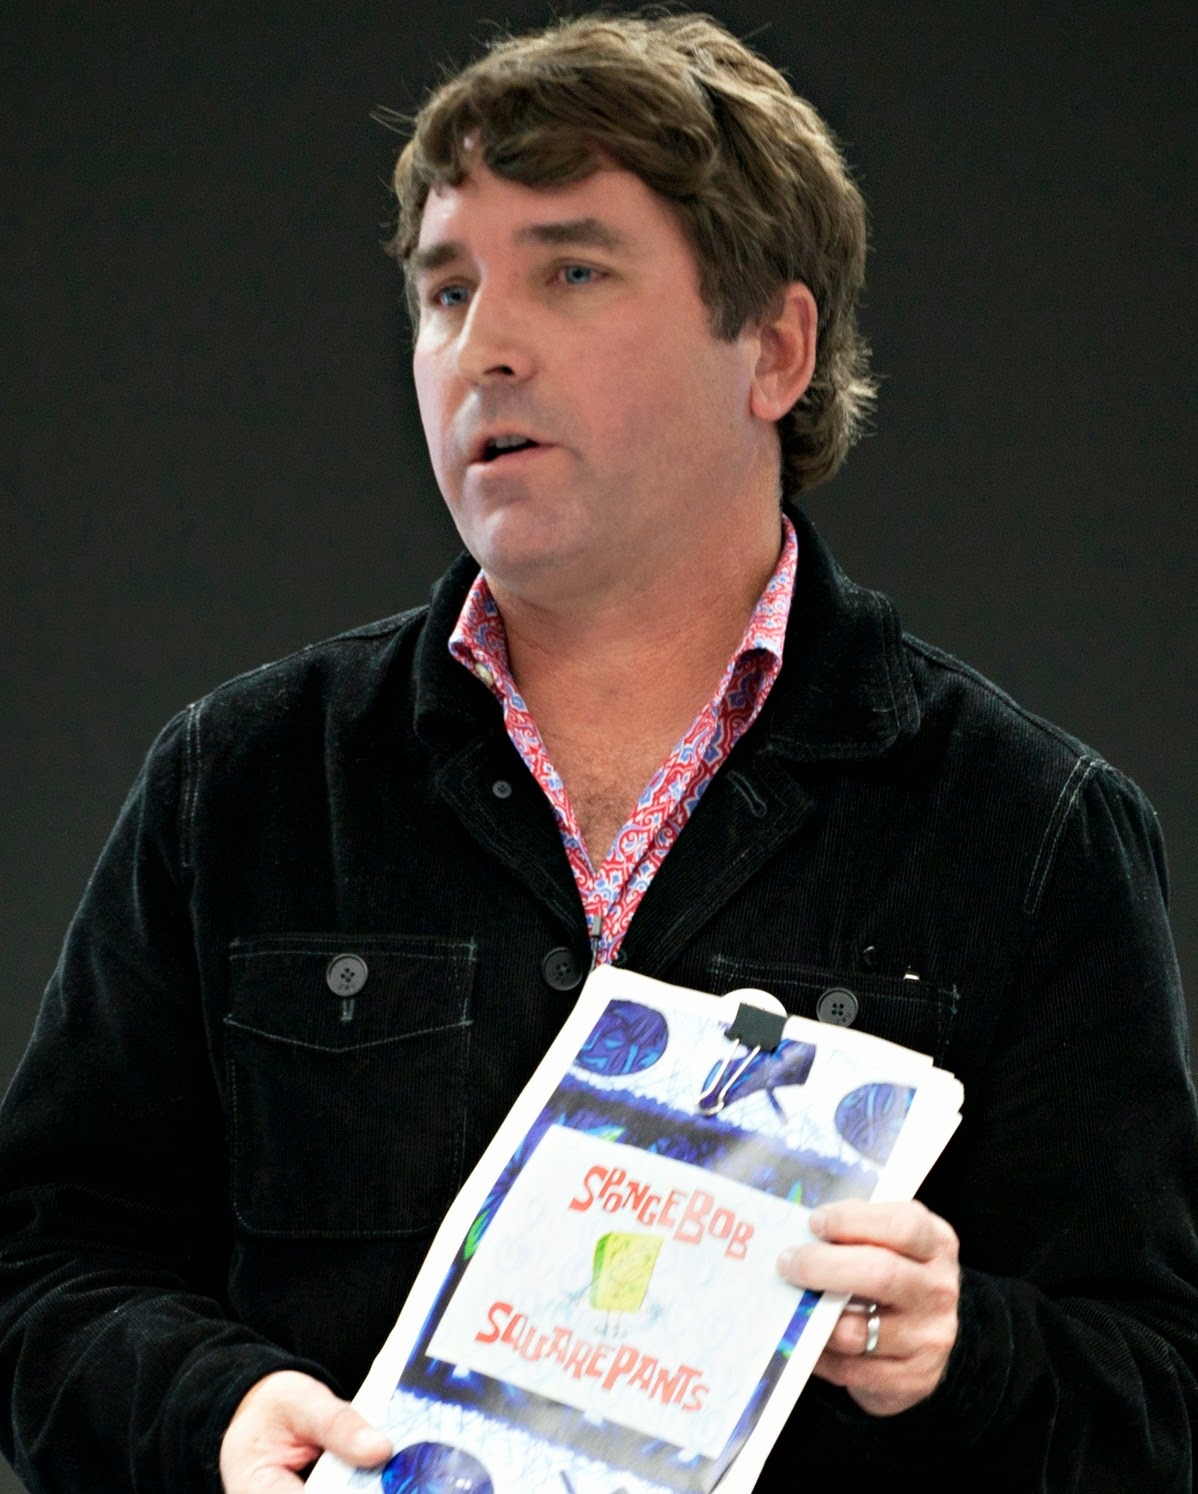 Stephen Hillenburg Net Worth